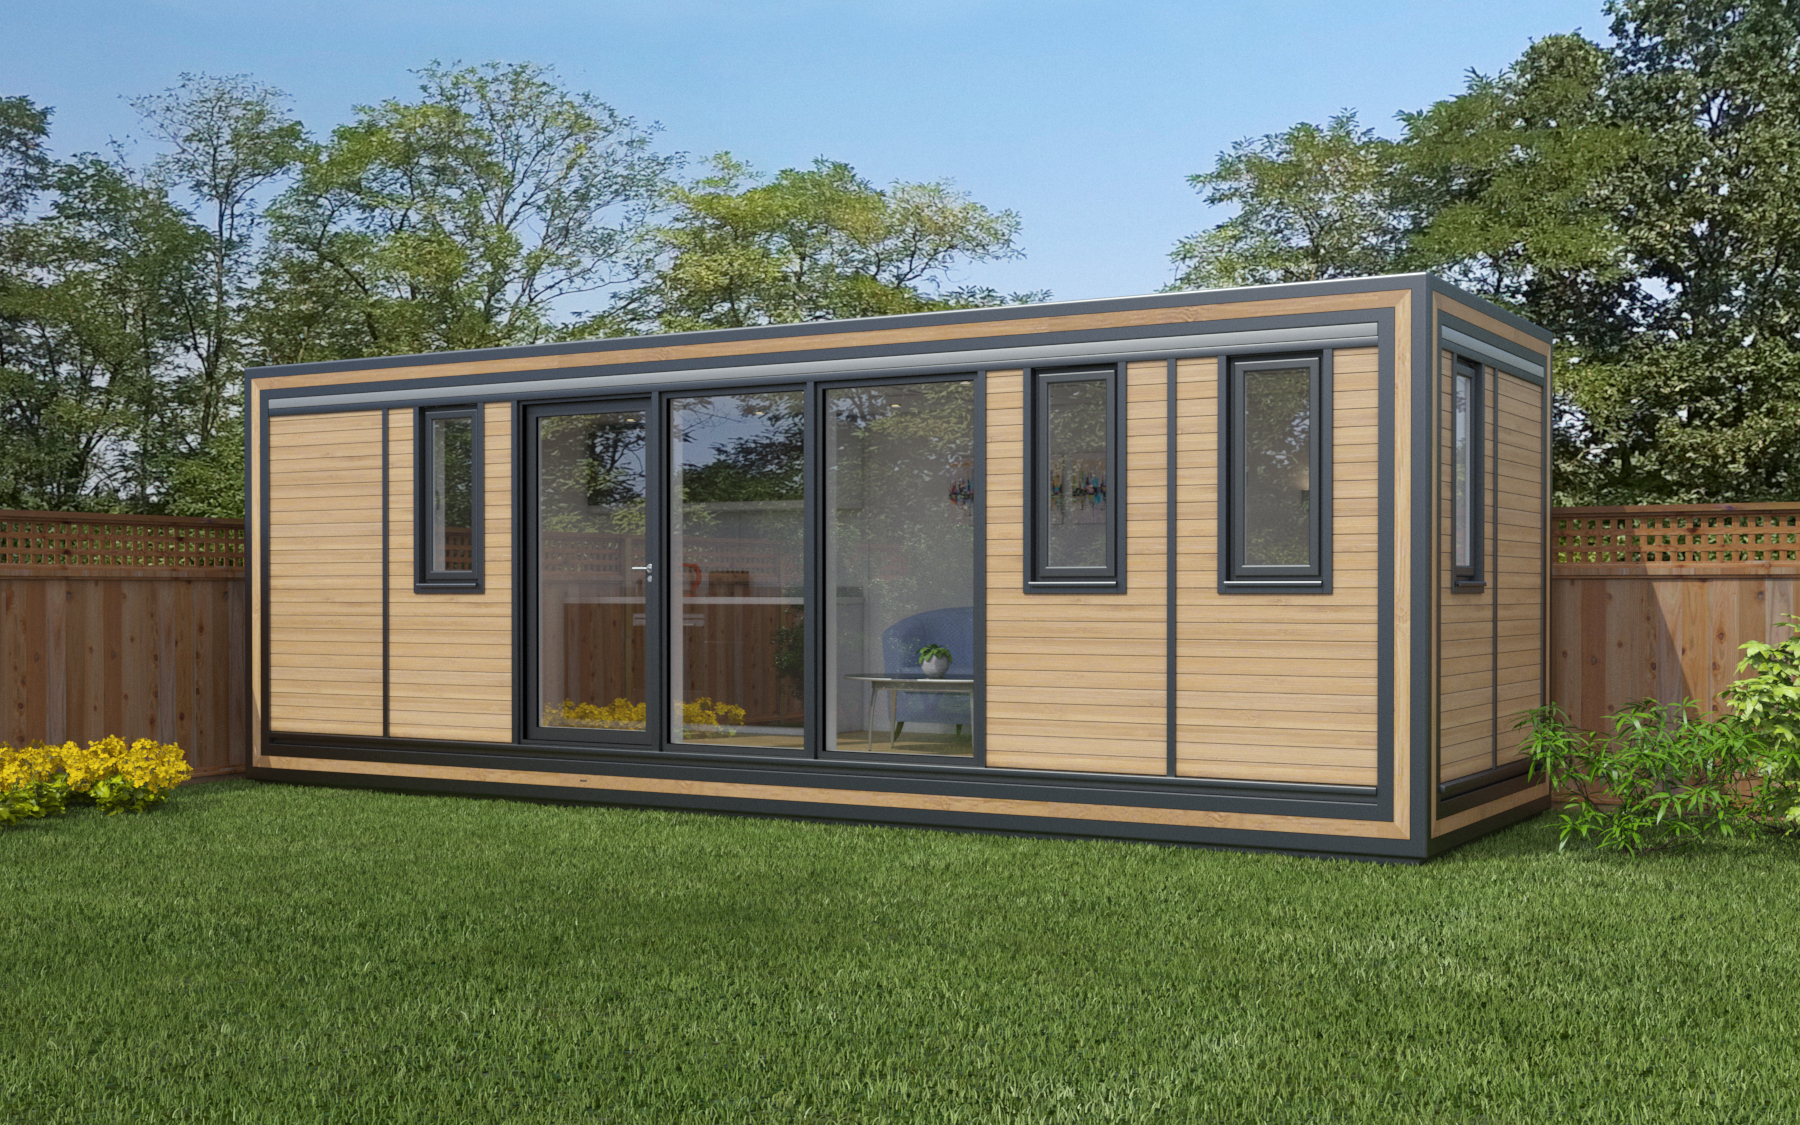 ZEDBOX 720  (7 x 2)  Internal Size: 7472 x 2117  External Size: 7942 x 2587  Bed Options: Single or Double  Kitchen Options: Micro Kitchen or Kitchen  Wet Room Options: Yes  Portico: No  Price:  £32,000    Optional Extras    Request Zedbox Catalogue